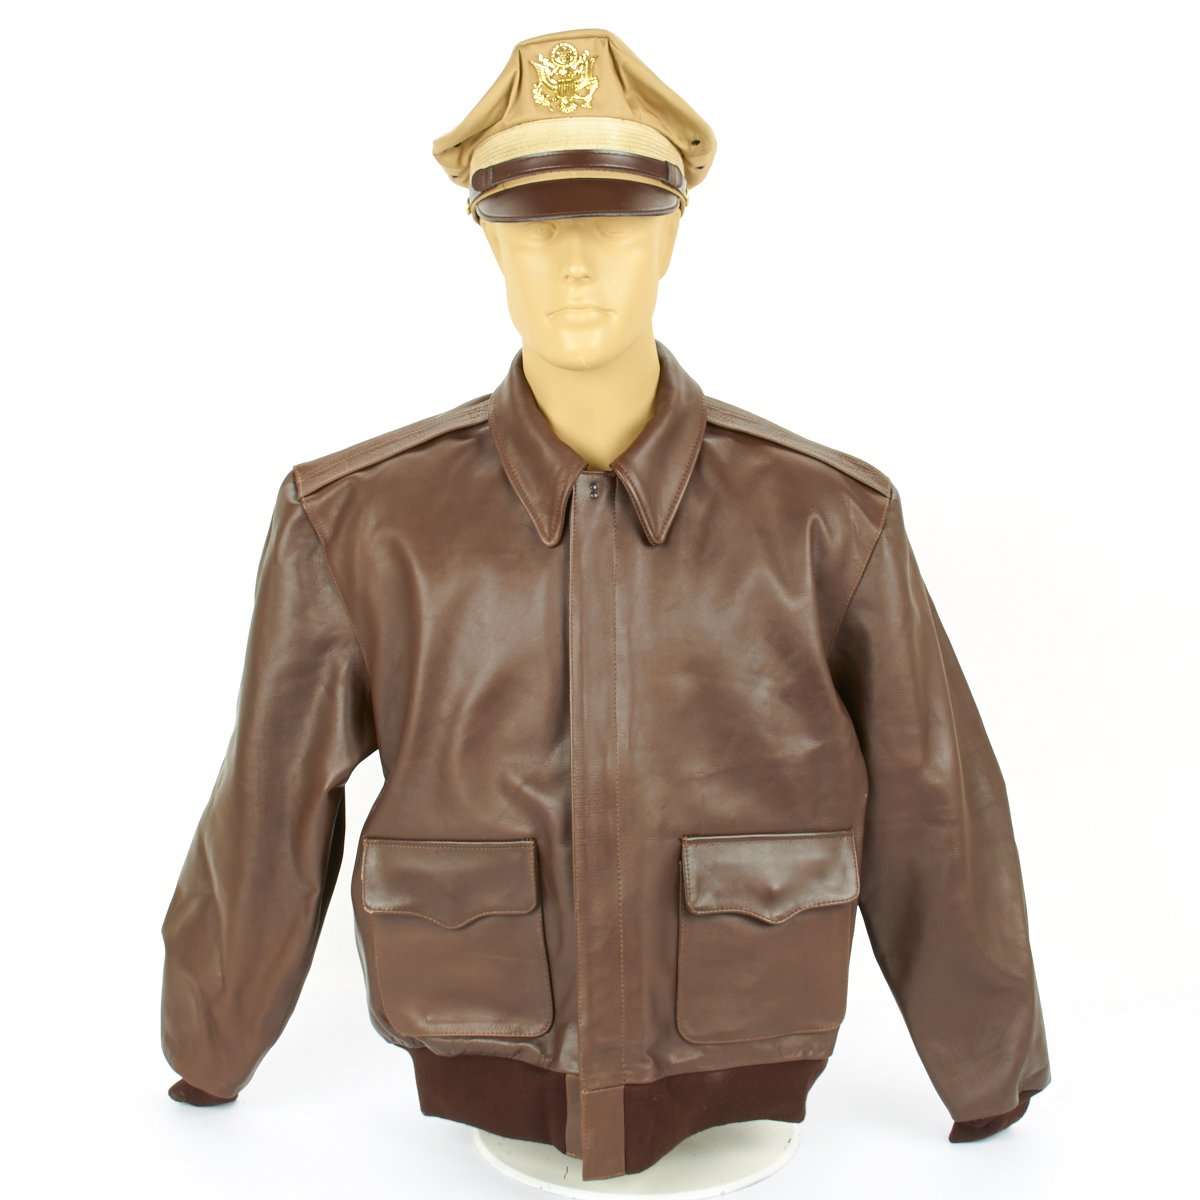 e7aff5cc268 Prev · U.S. WWII Army Air Force USAAF Type A-2 Flight Jacket- Genuine  Russet Brown. Tap to expand